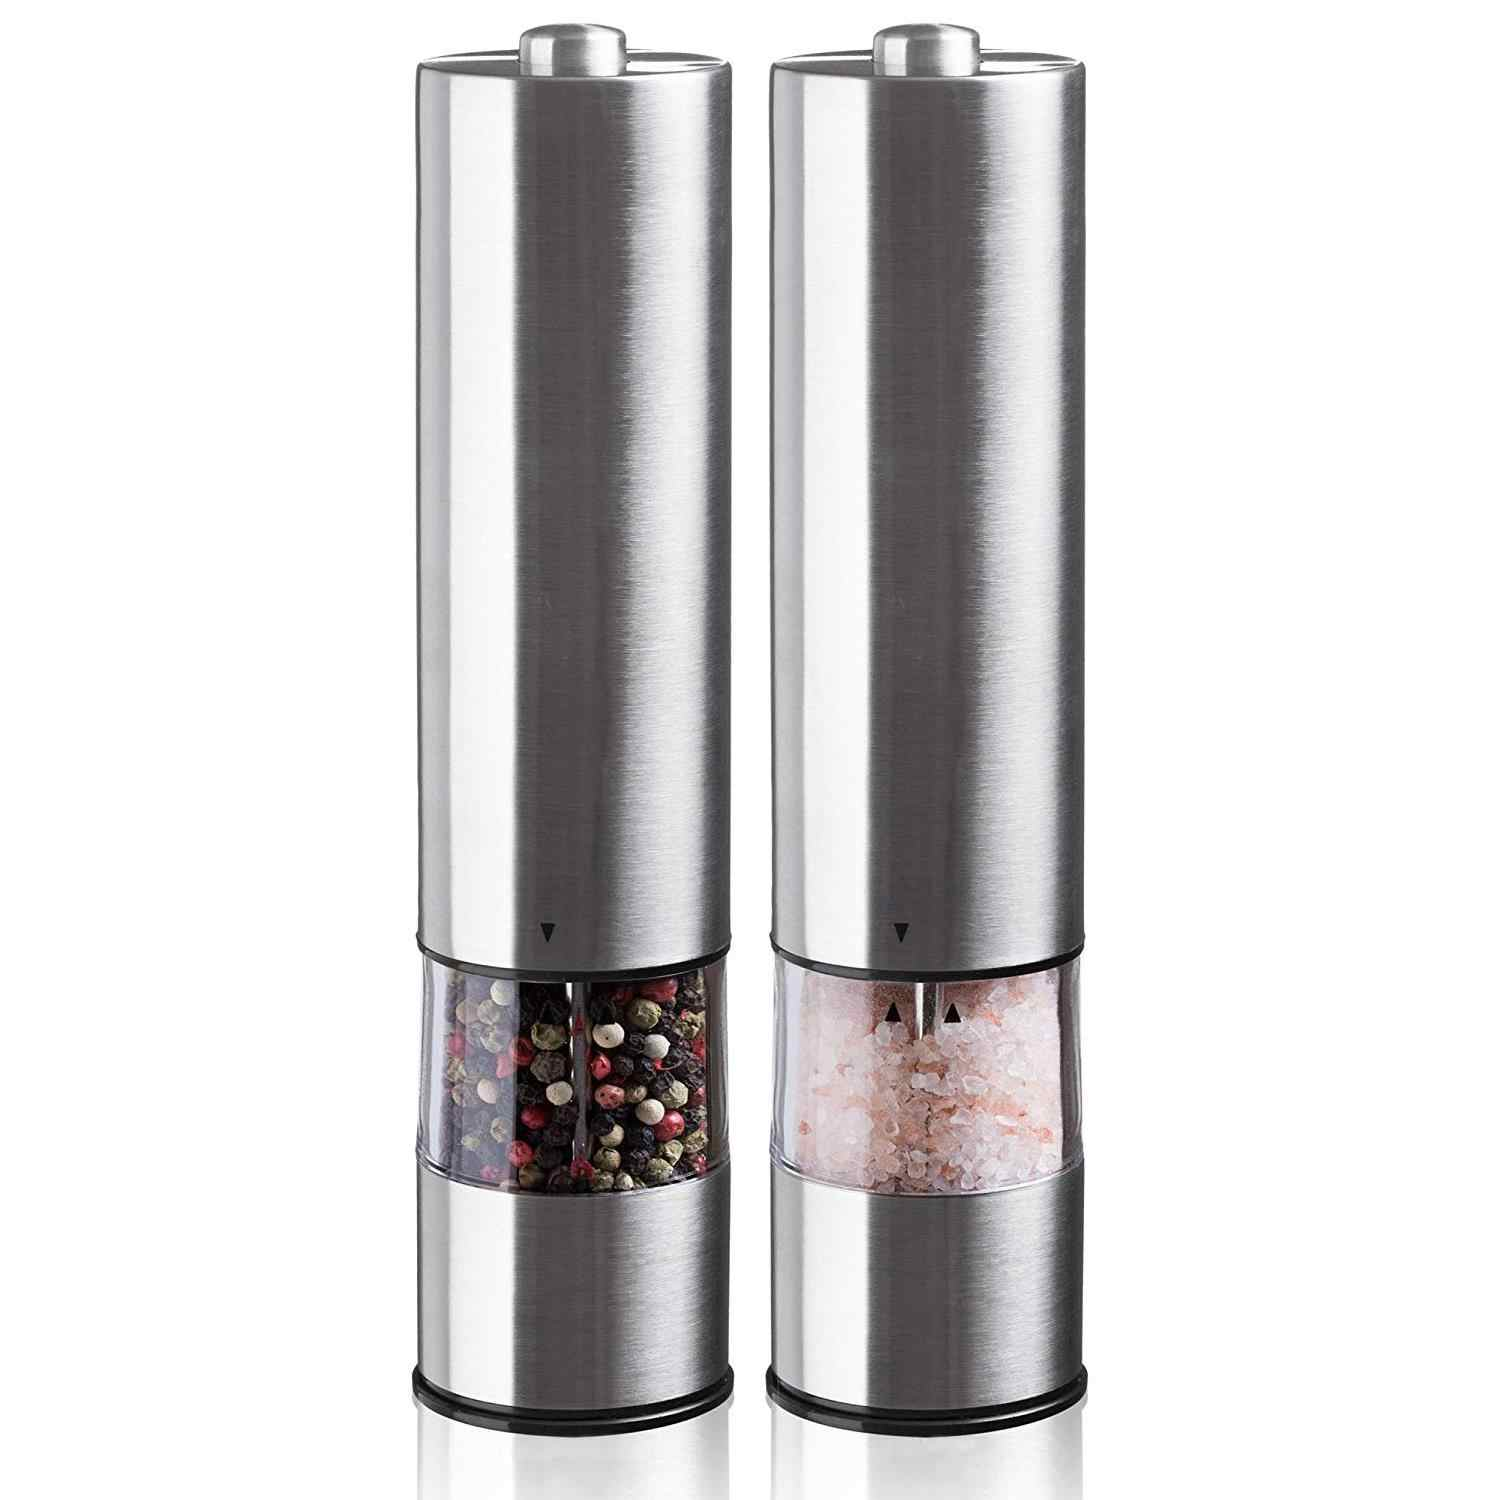 Electric salt and pepper grinding unit (2 packs) - Electronically adjustable vibrator - Ceramic grinder - Automatic one-handed